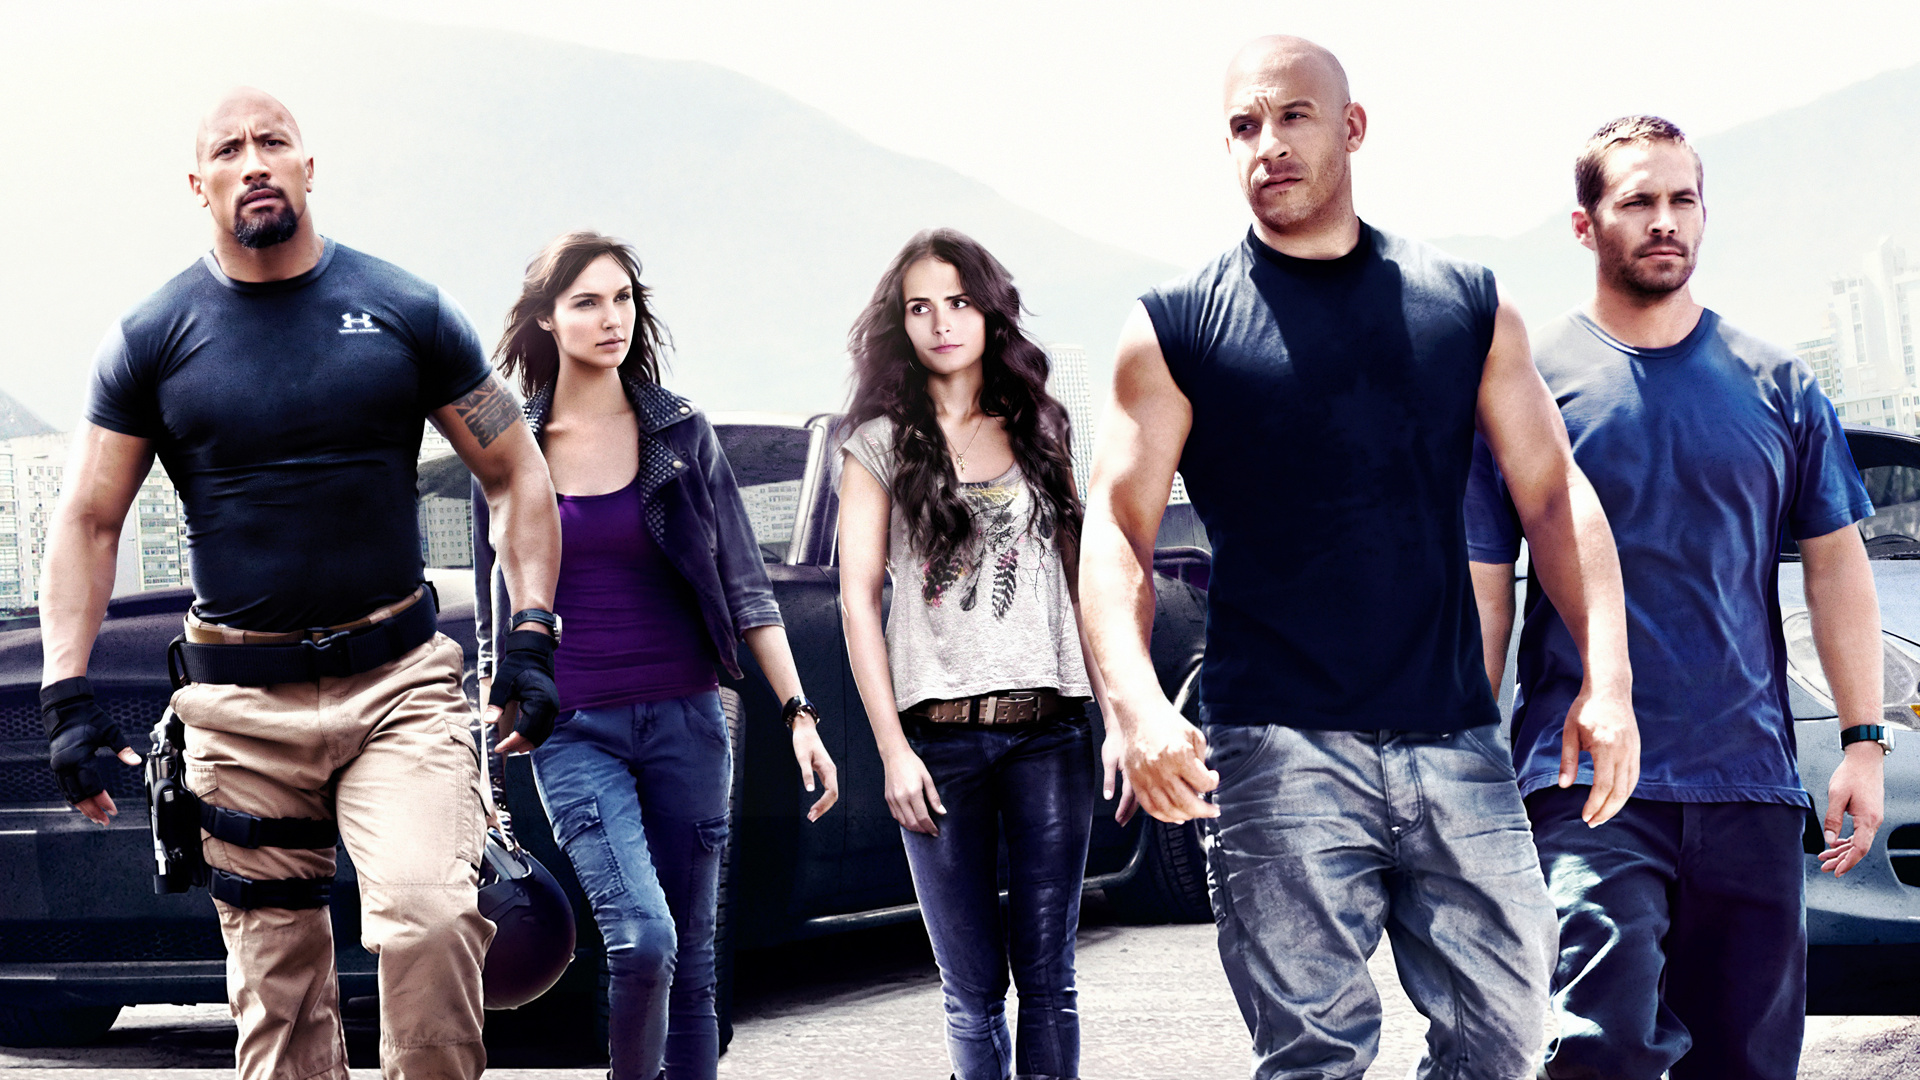 Fast and Furious 7 wallpaper 8 1920x1080